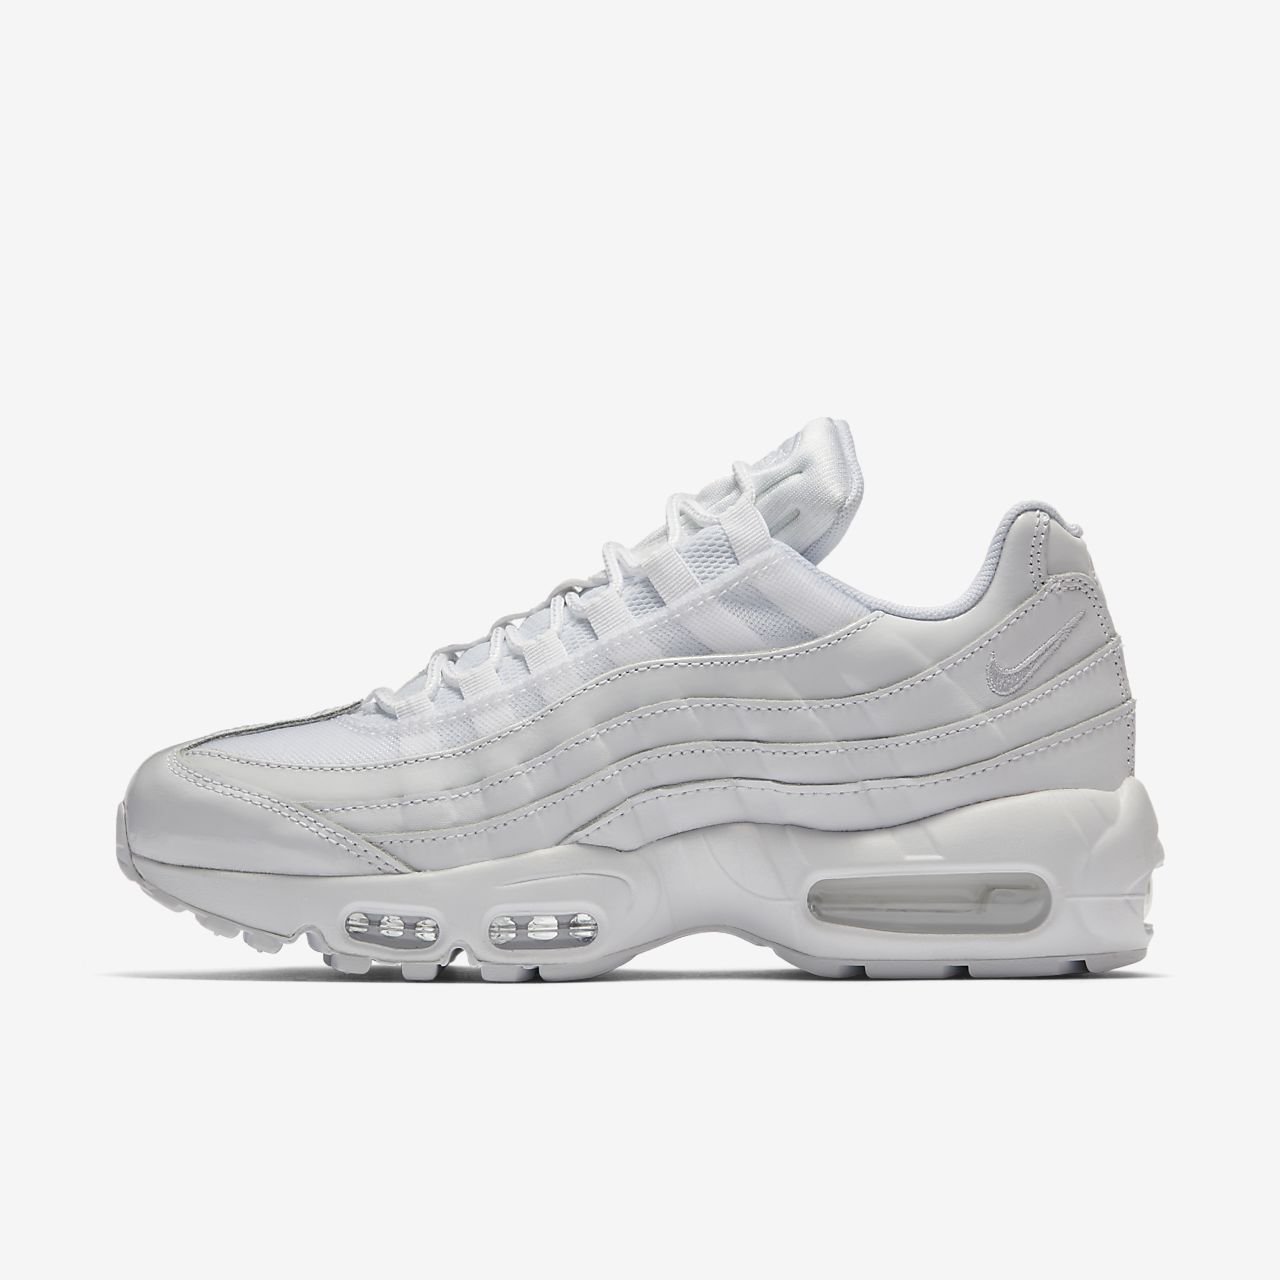 9ce6e3521 Nike Air Max 95 Women's Shoe. Nike.com CA